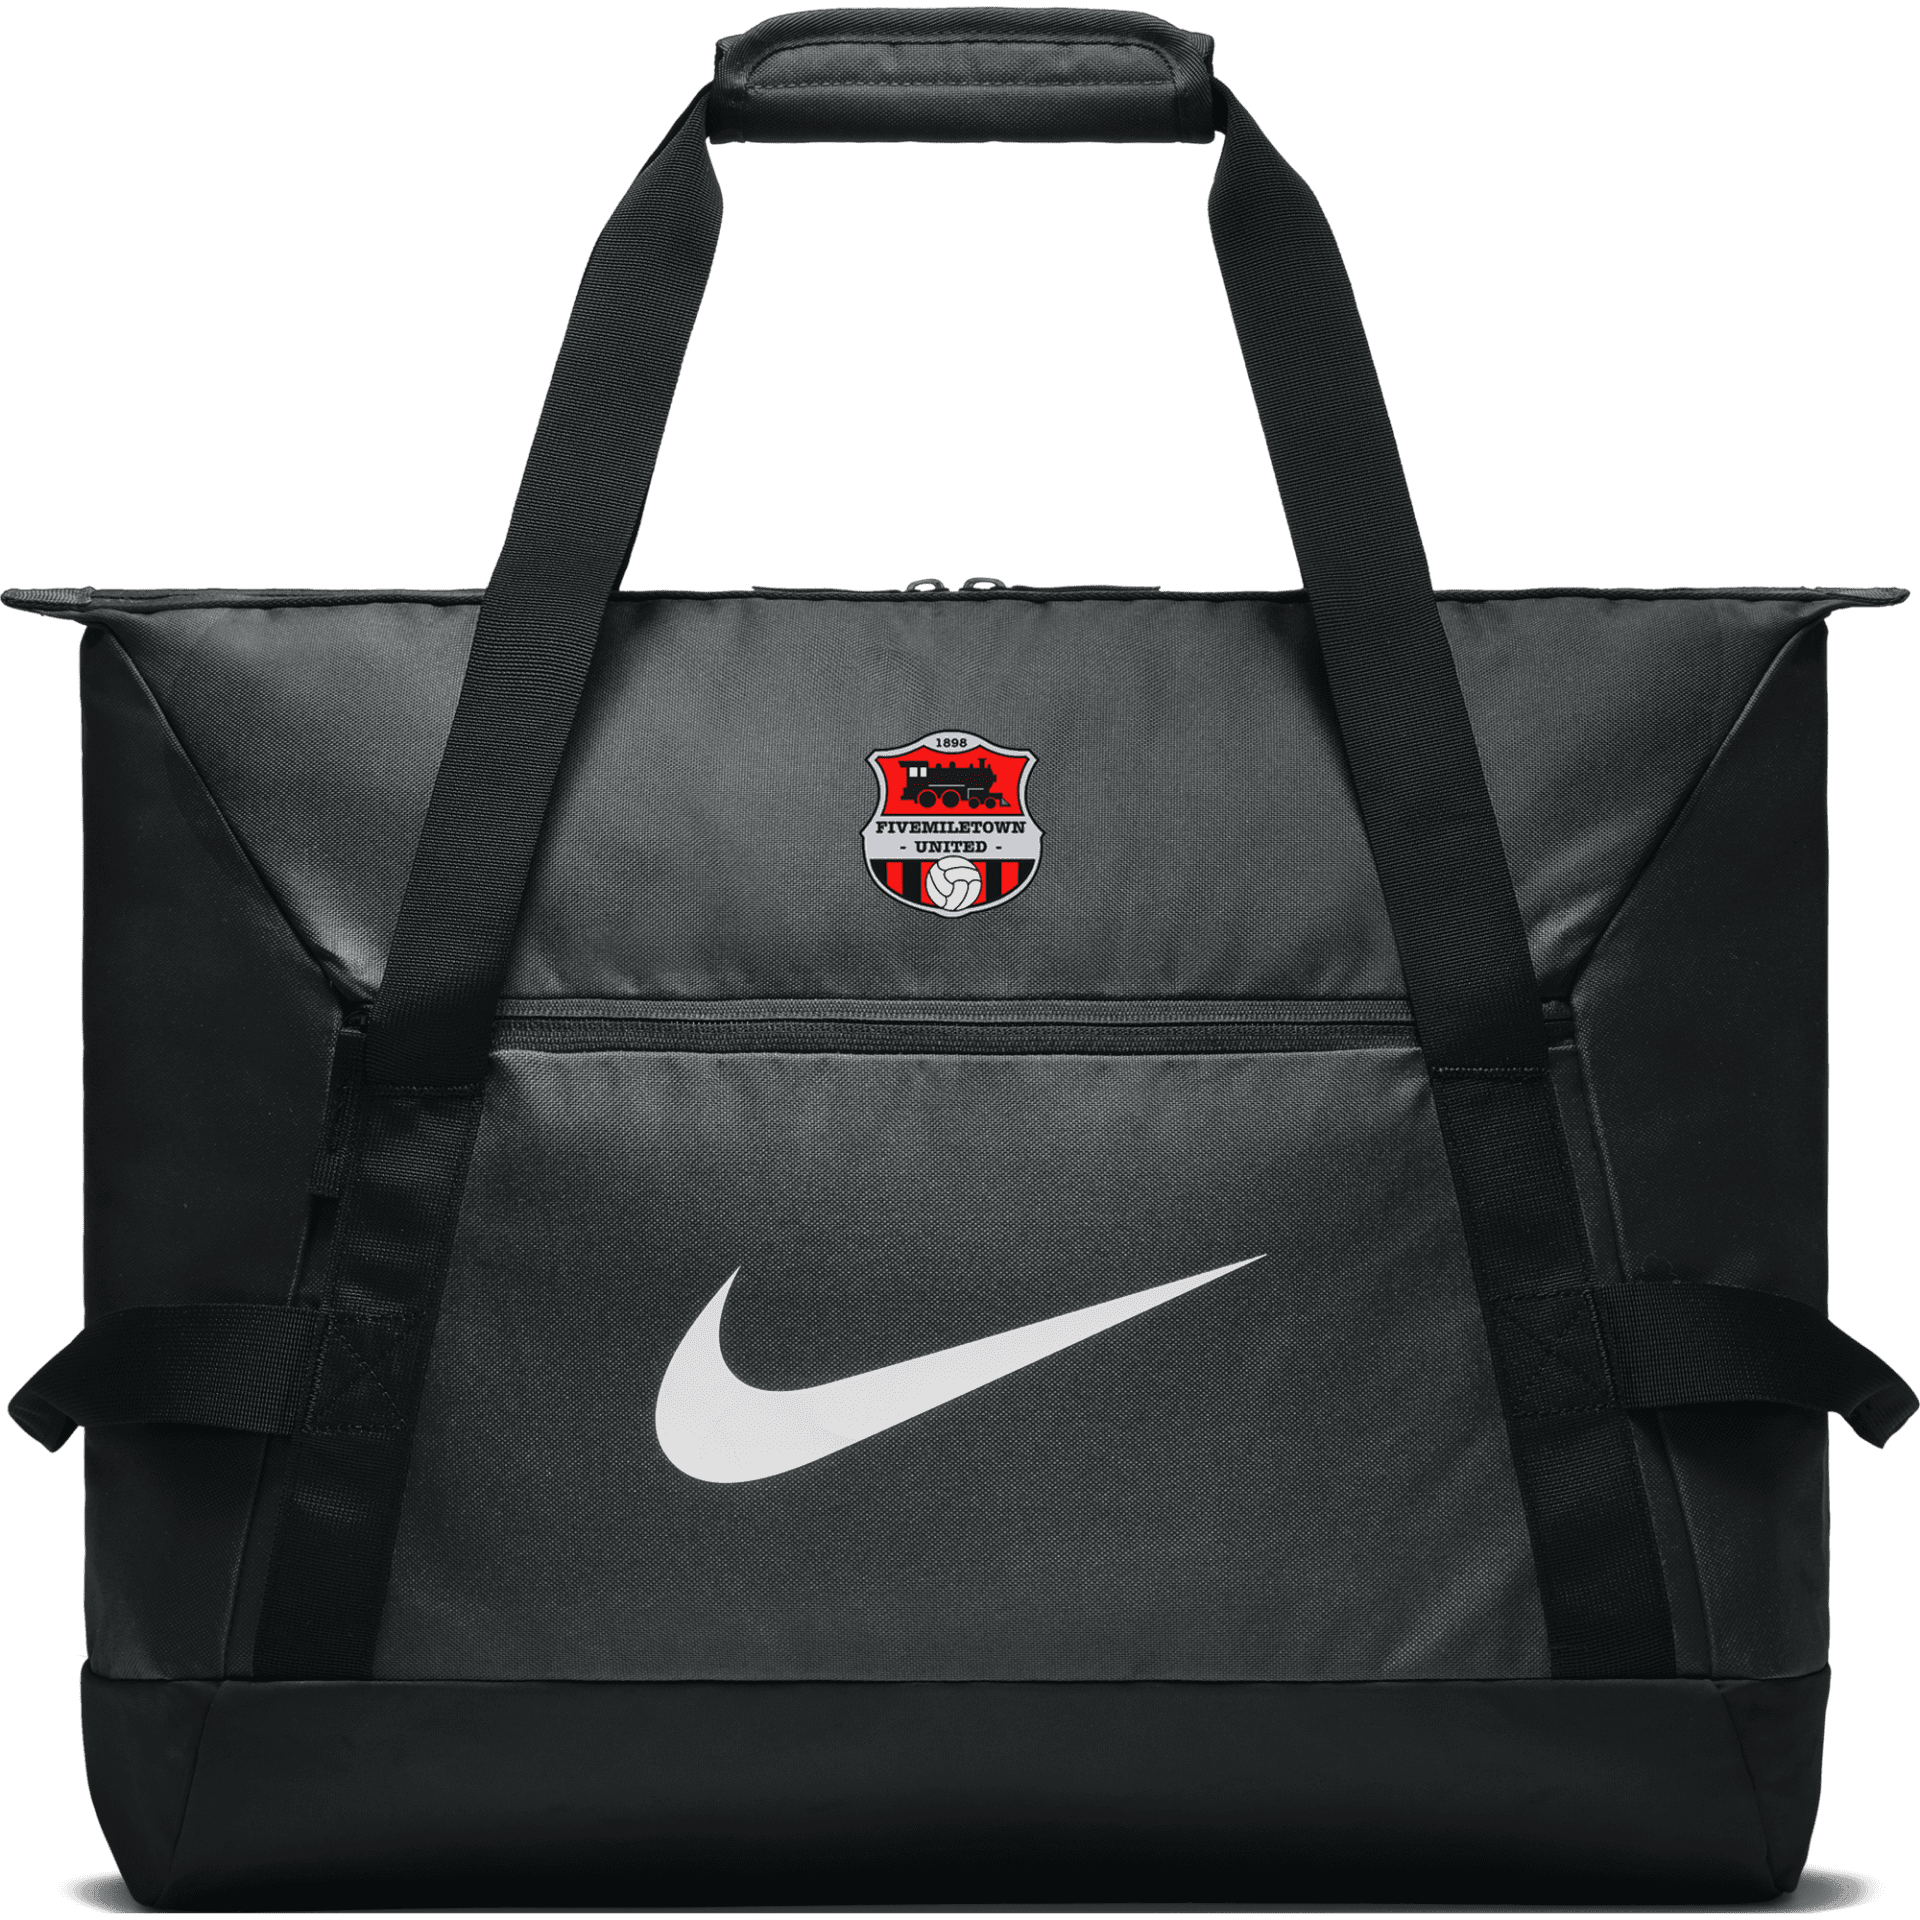 fivemiletown united duffel bag 34352 p